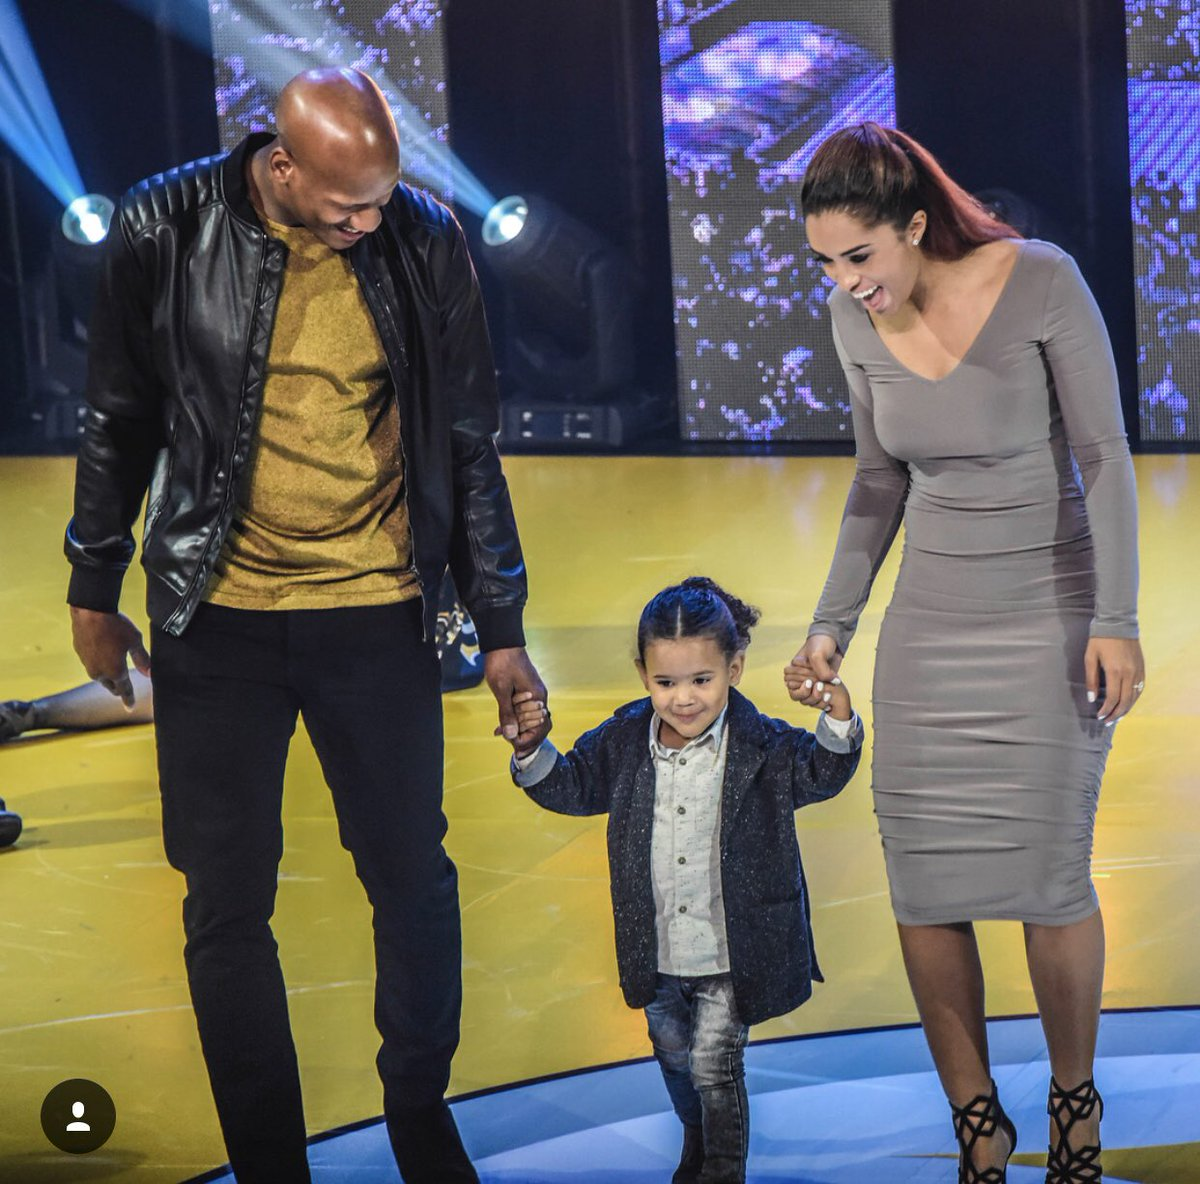 What a wonder night with my loved ones Steelers Fashion Show, another success! #shalieve #myworld <br>http://pic.twitter.com/LEEGtJpnXA